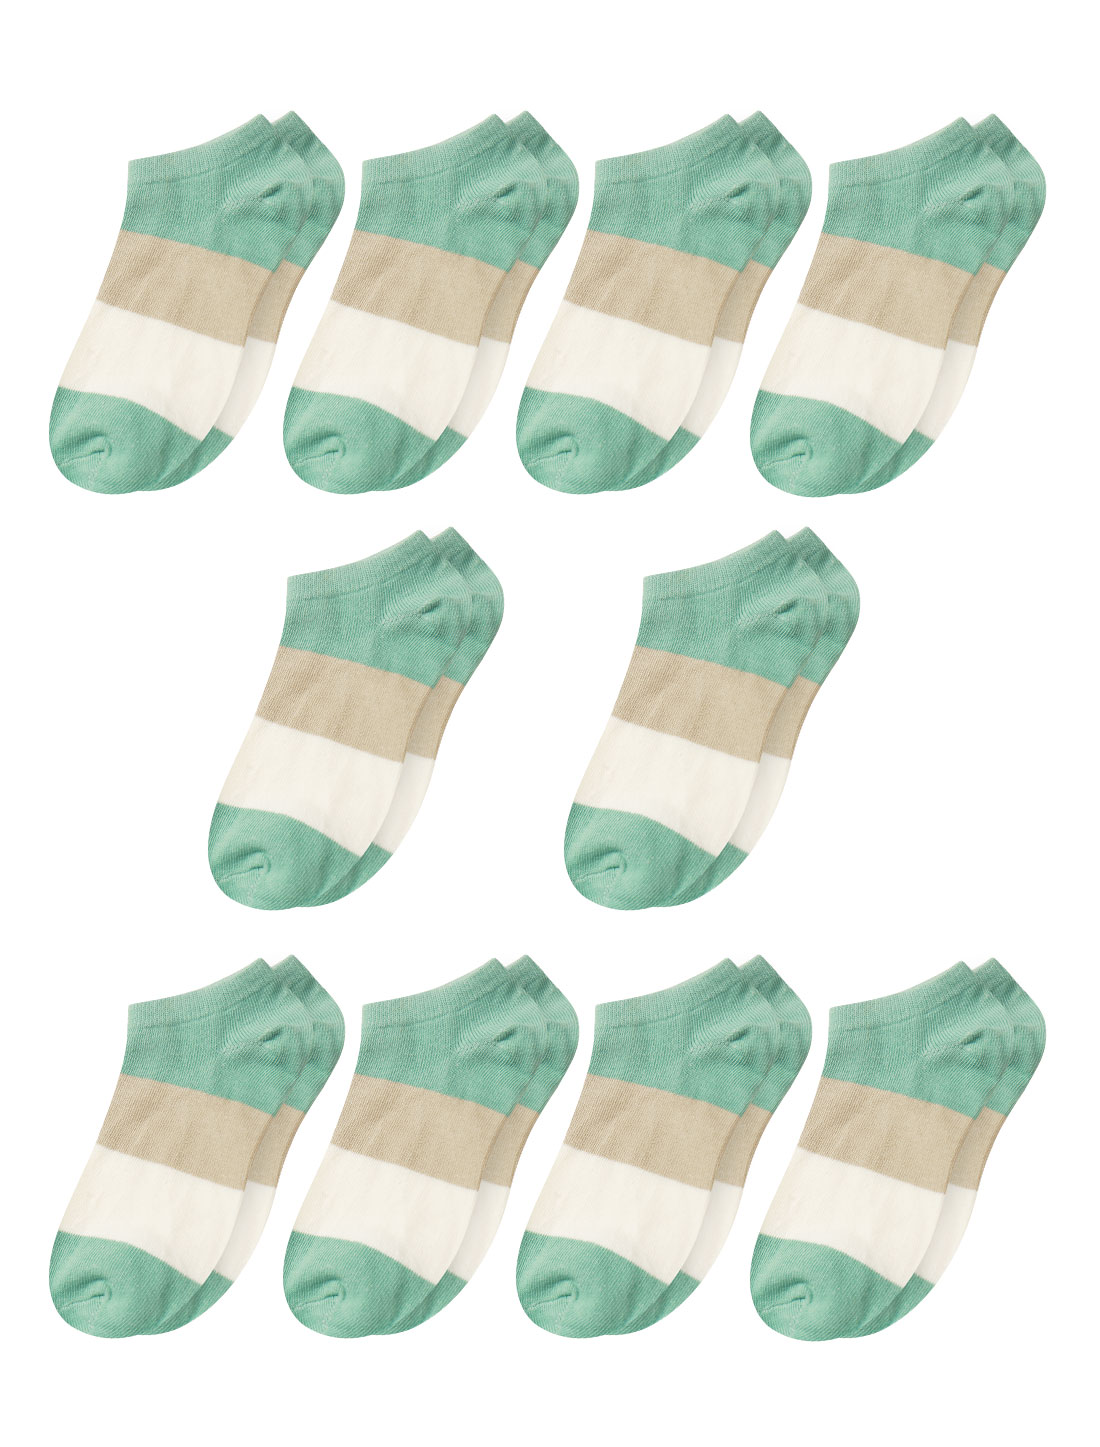 Women Low Cut Ankle Length Color Block Short Socks 10 Pairs Green 9-11